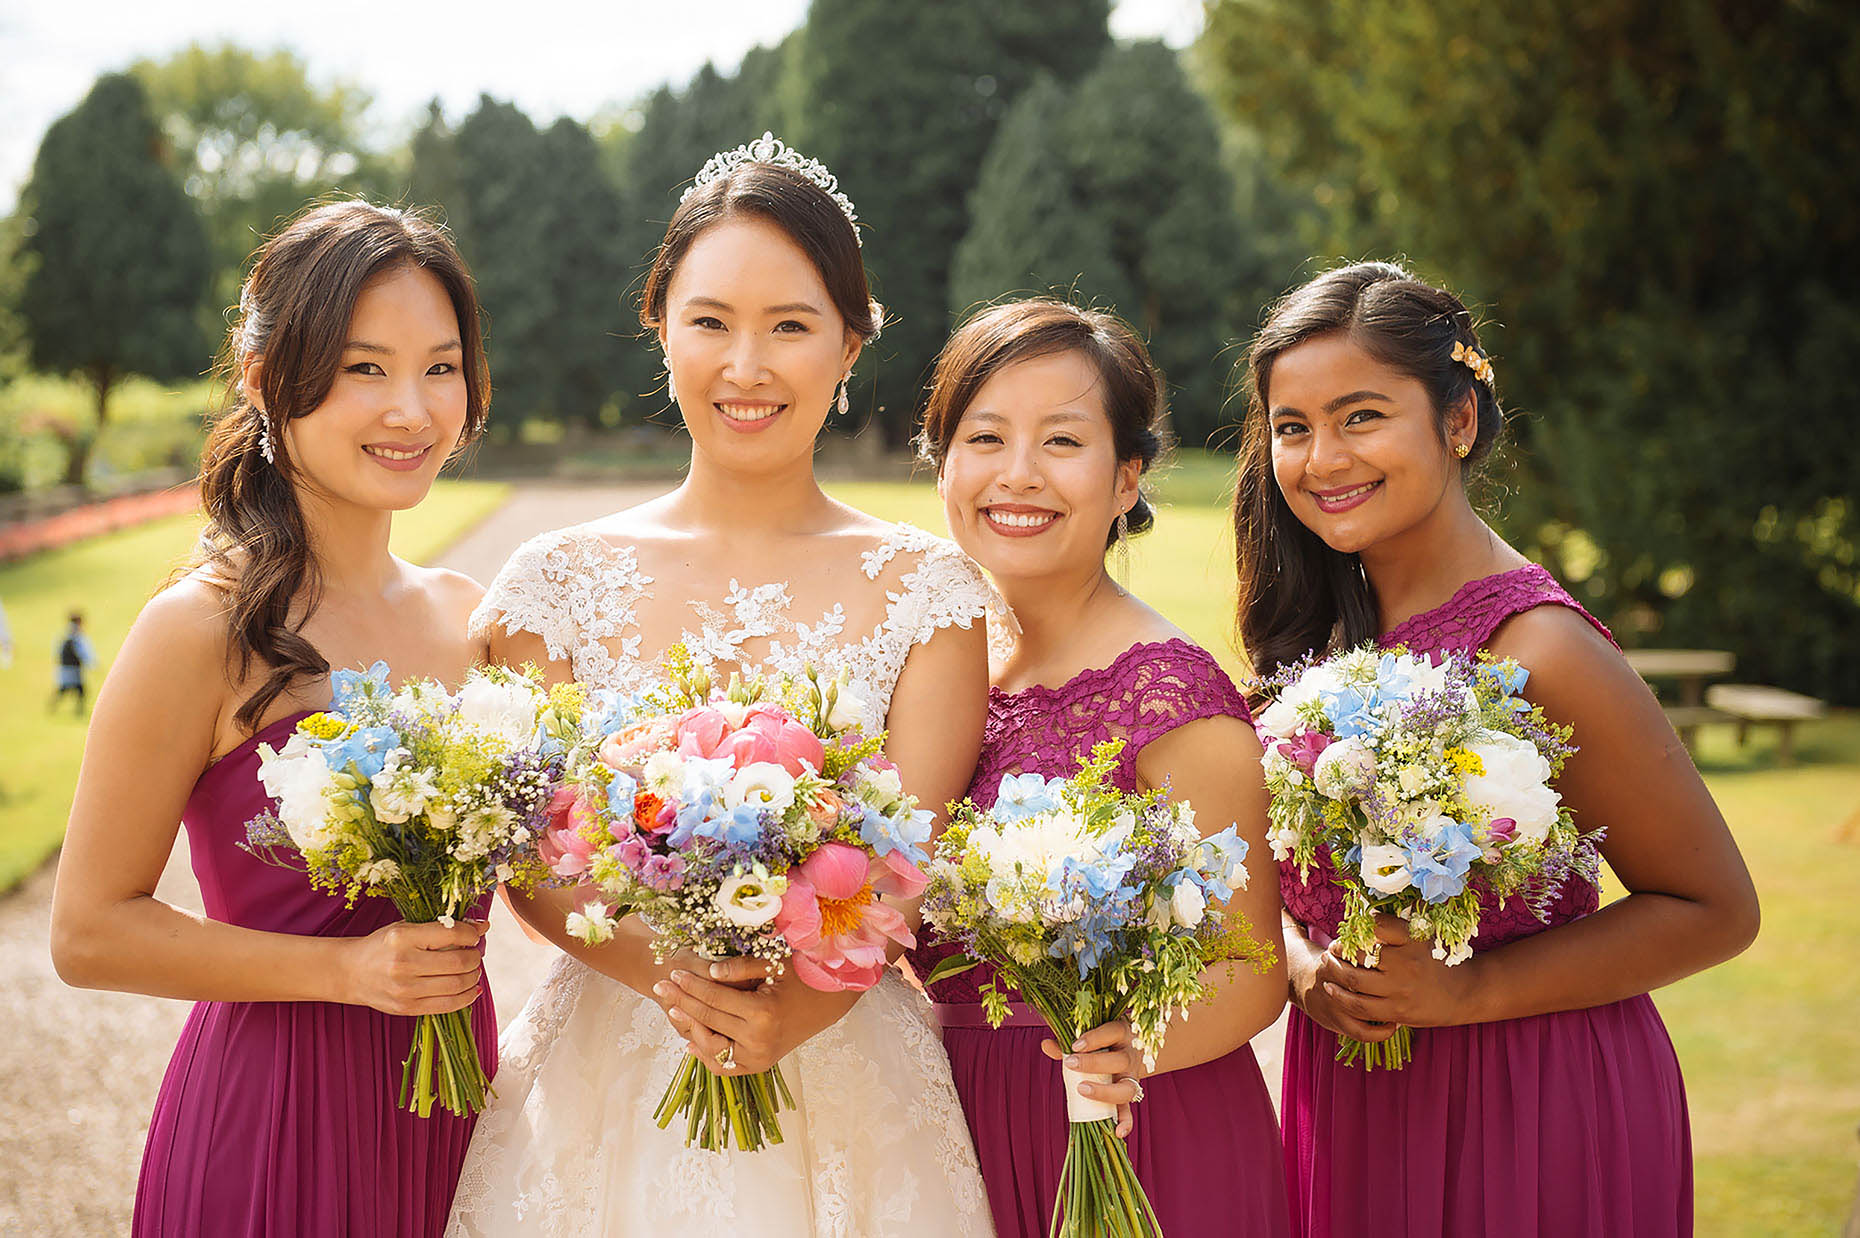 chay-felix-bride-with-bridesmaids-beaumanor-hall-leicestershire-wedding-photography-24